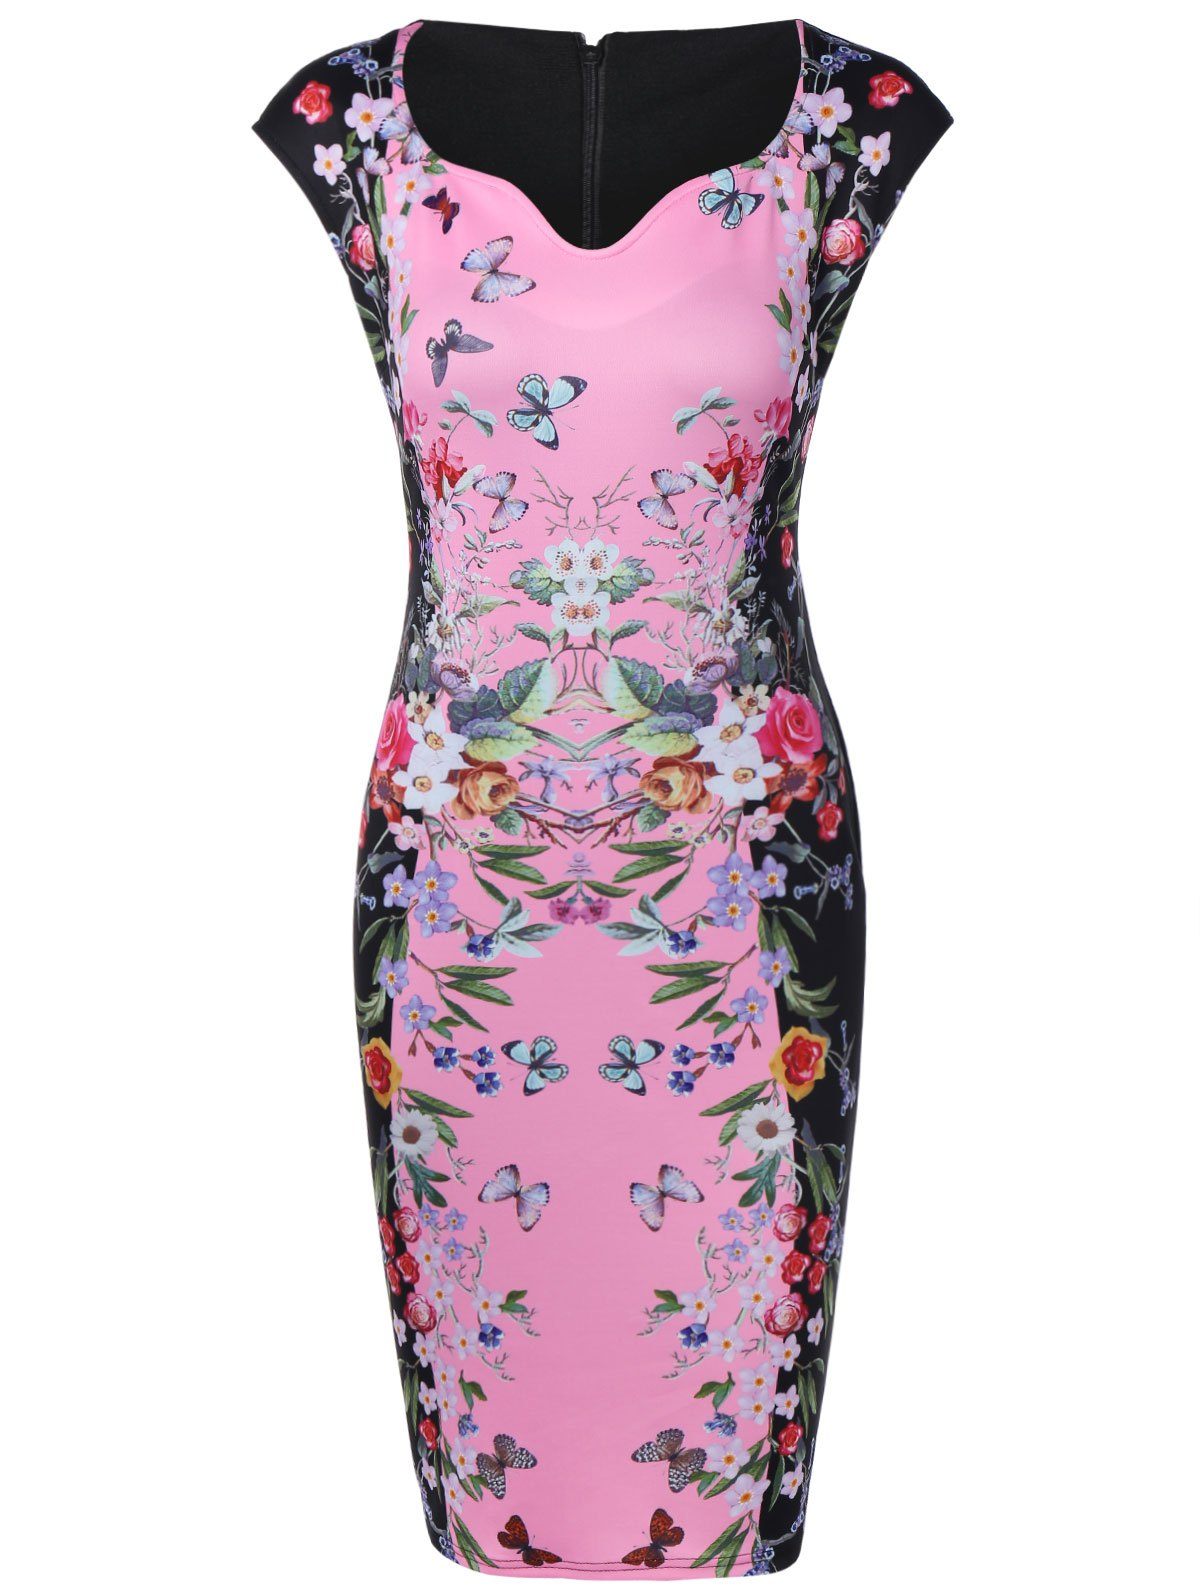 Flower Butterfly Print Bodycon Dress - PINK S